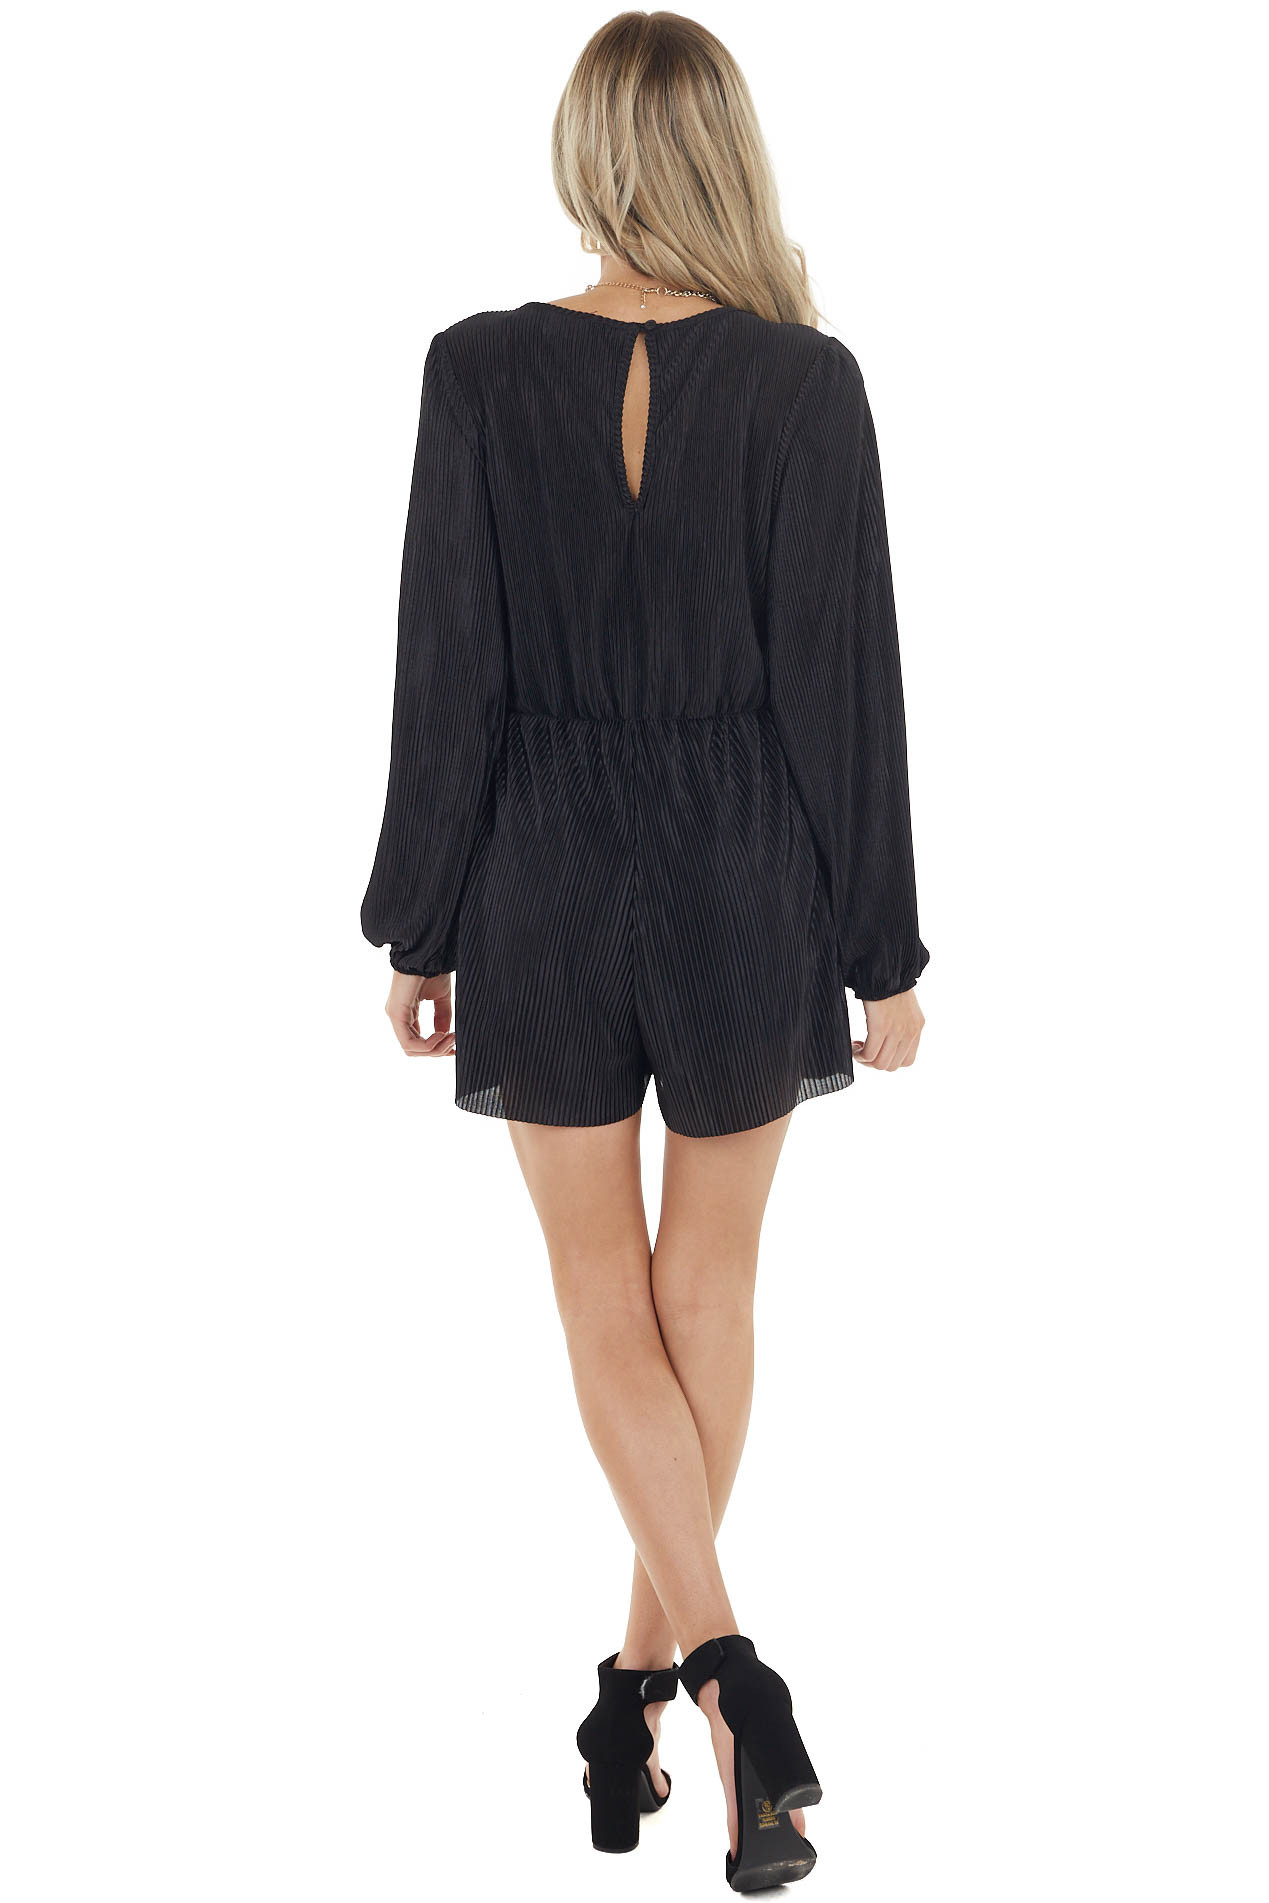 Black Pleated Empire Waist Romper with Long Puff Sleeves